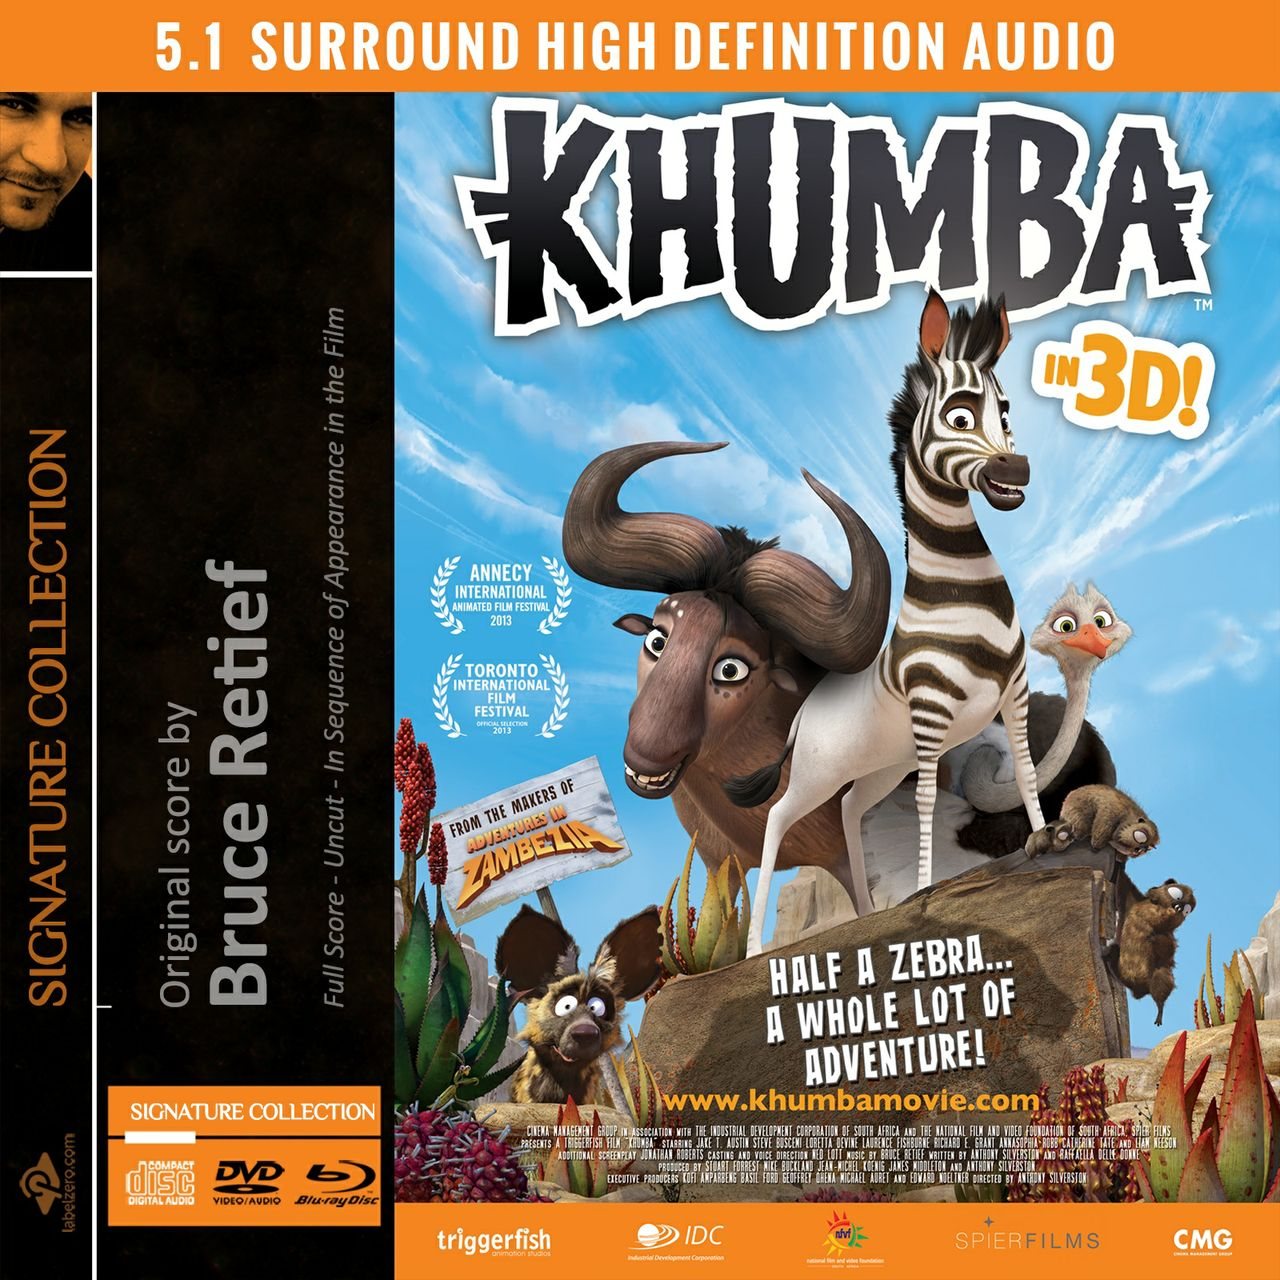 Khumba (Original Score) - FLAC Surround 24 Bit